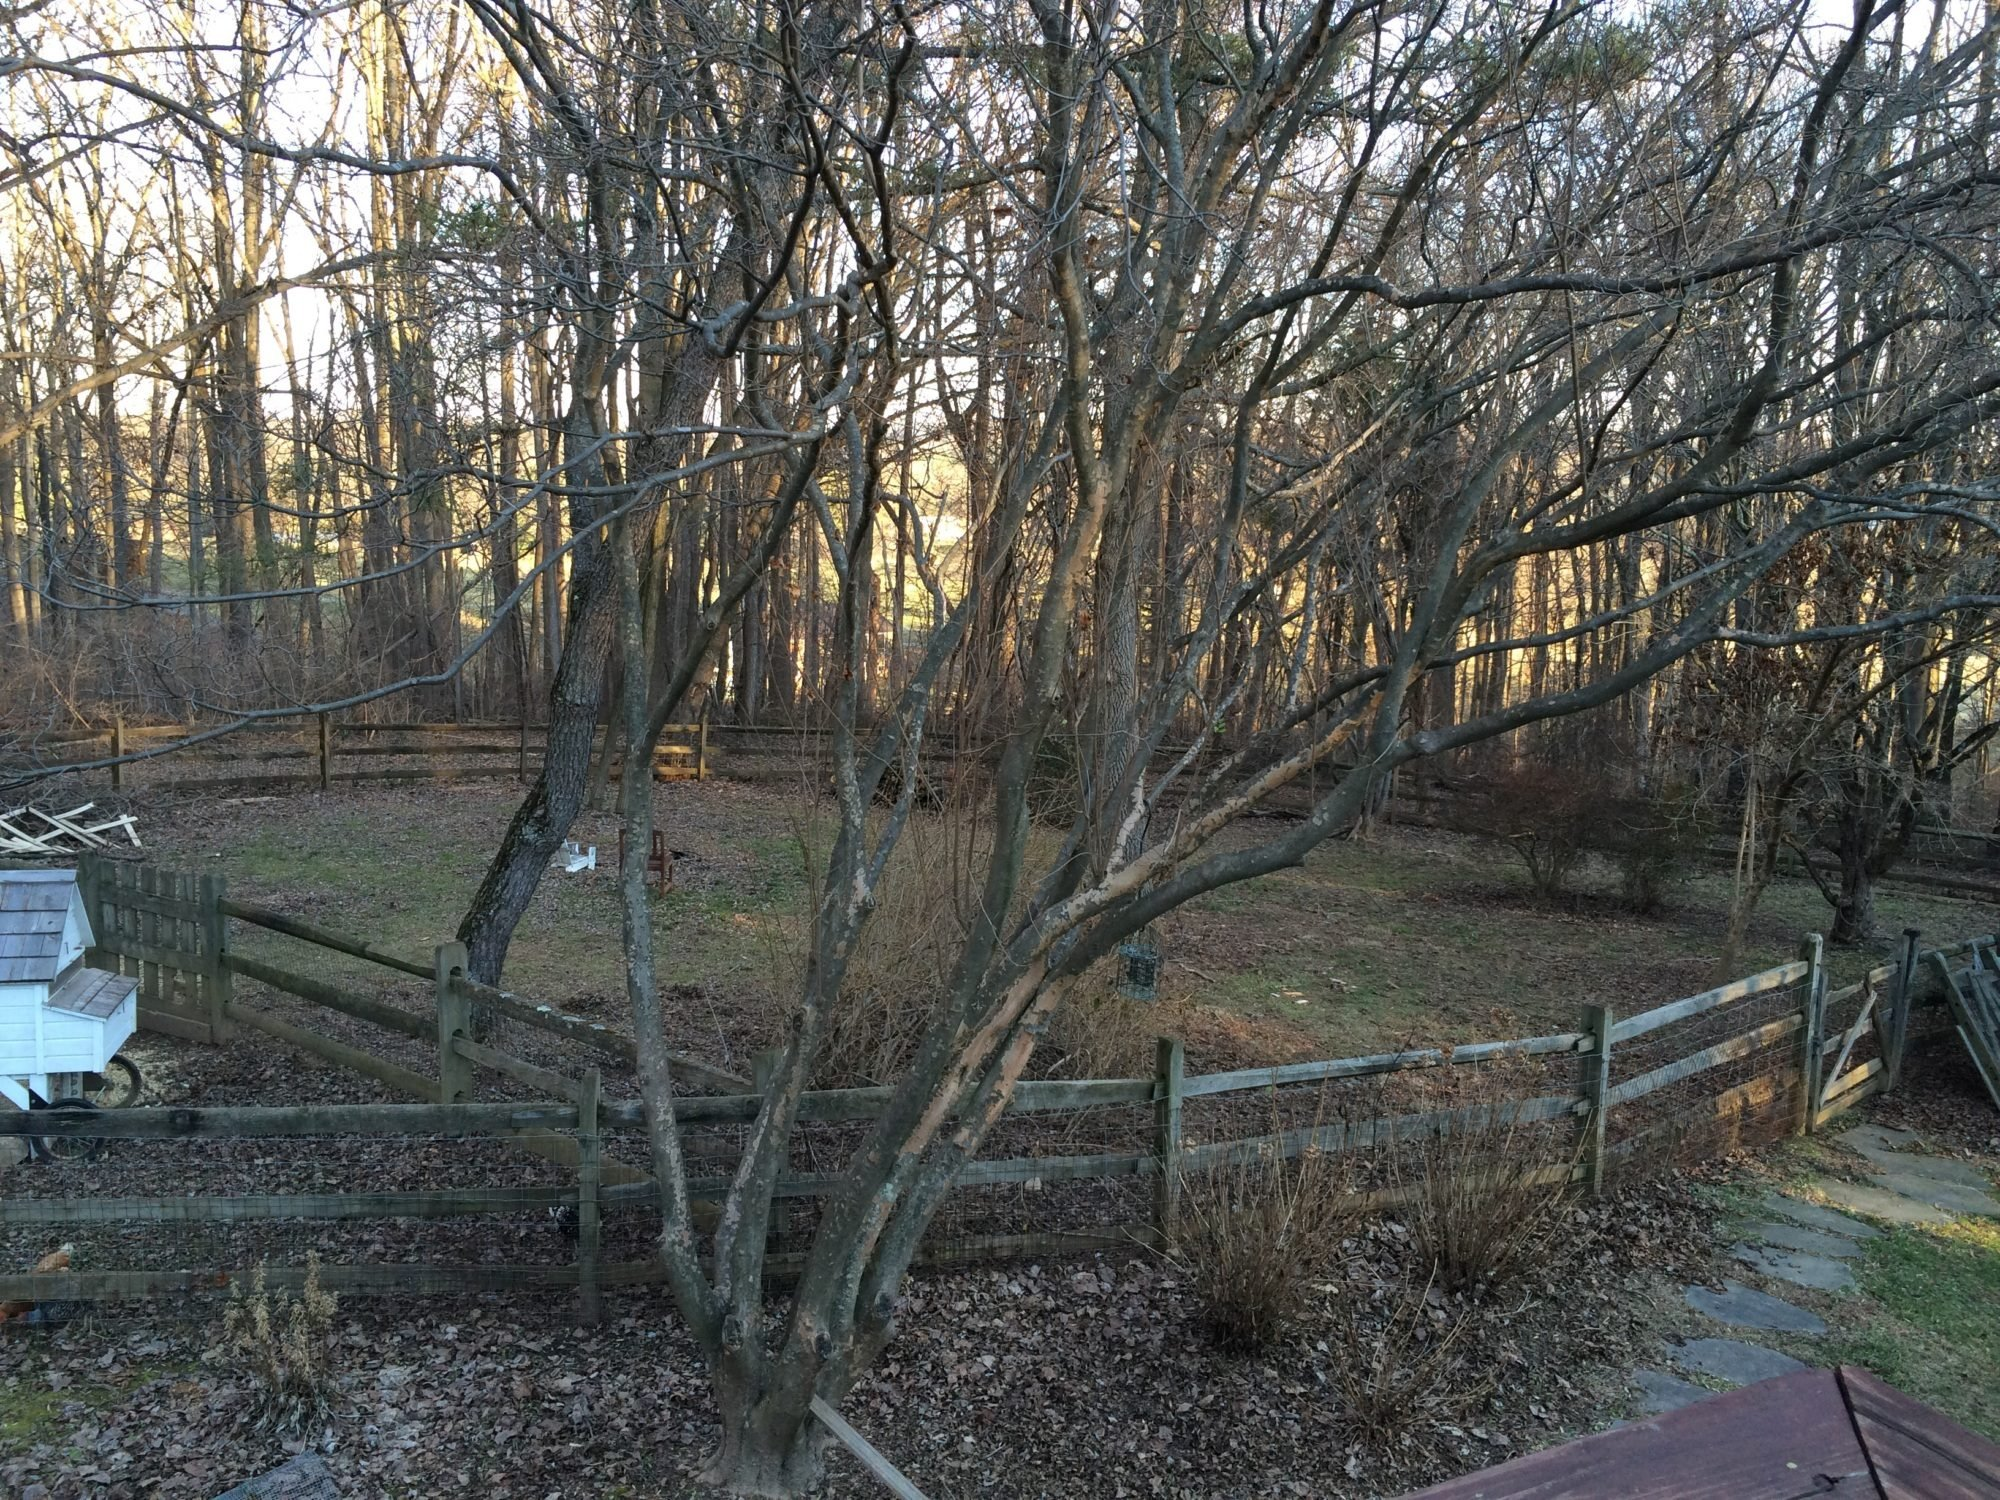 Existing fence, want to add electric fence | BackYard Chickens